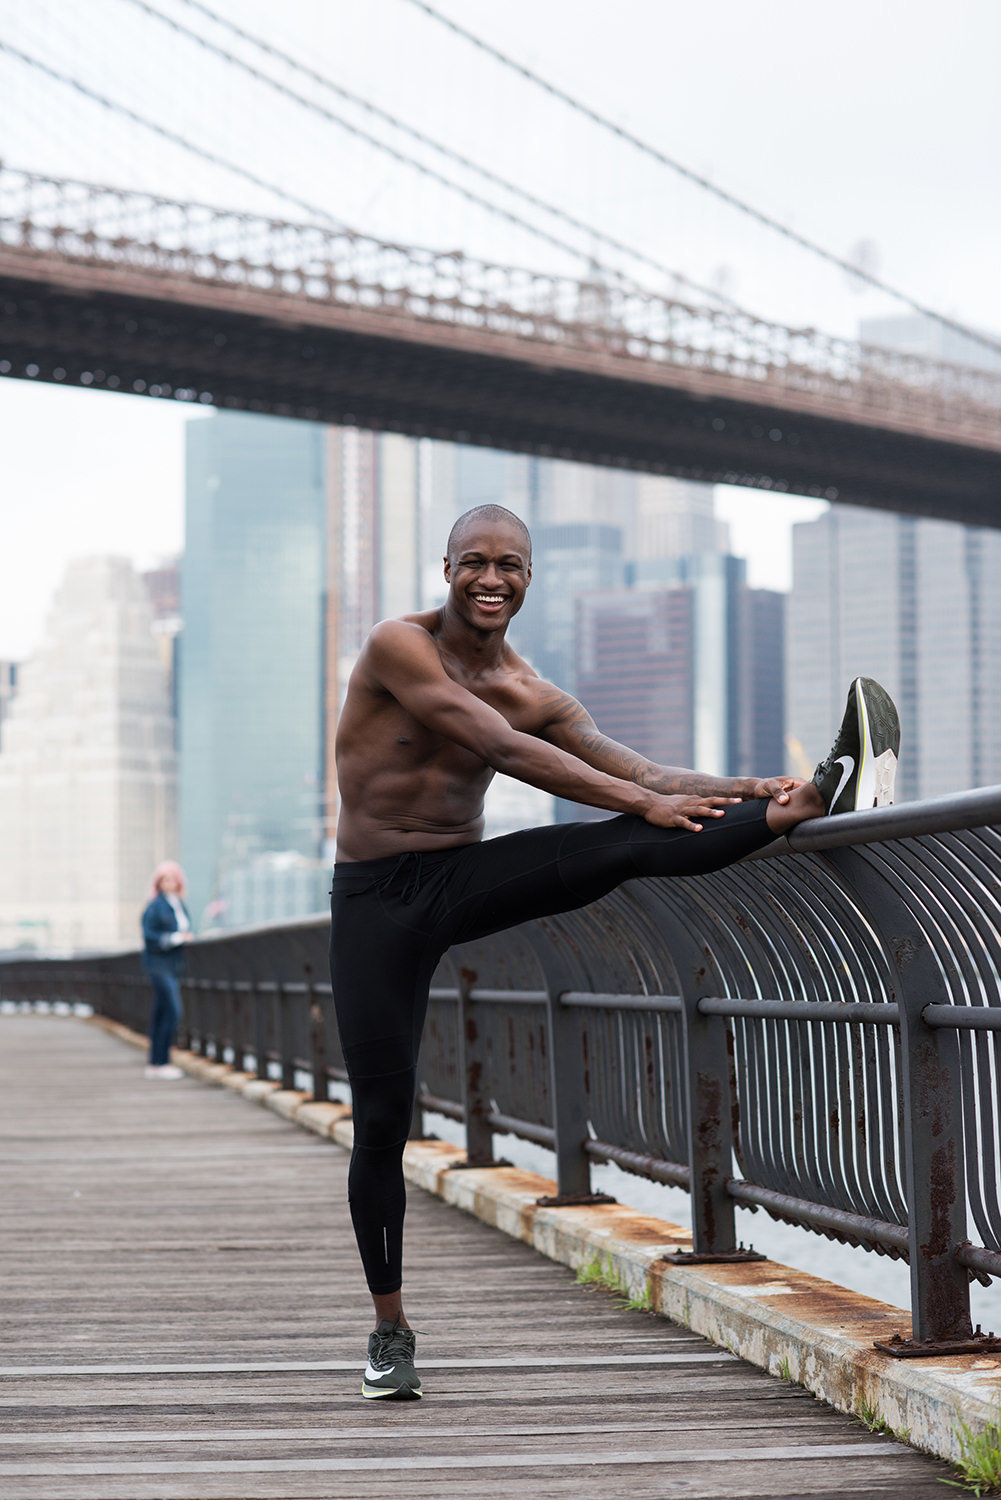 man hamstring stretch dumbo new york bridge running fitness male